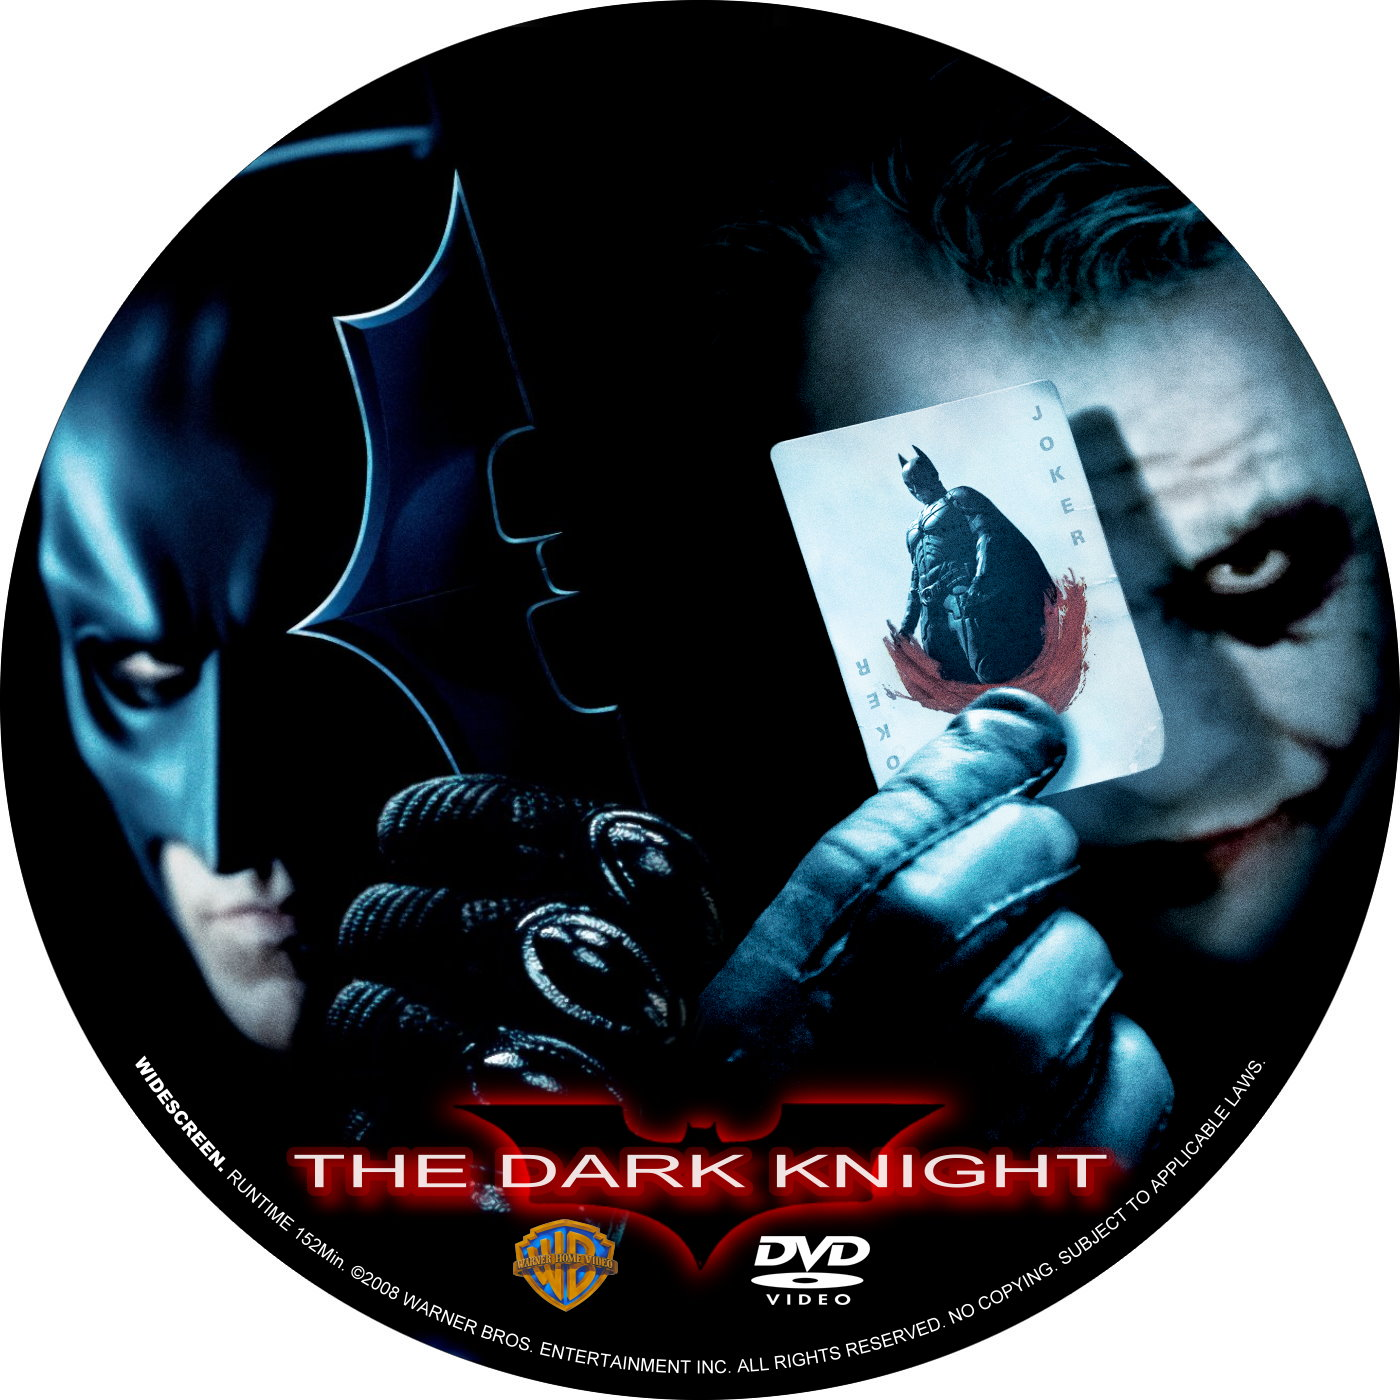 the-dark-knight-dvd-disk-label